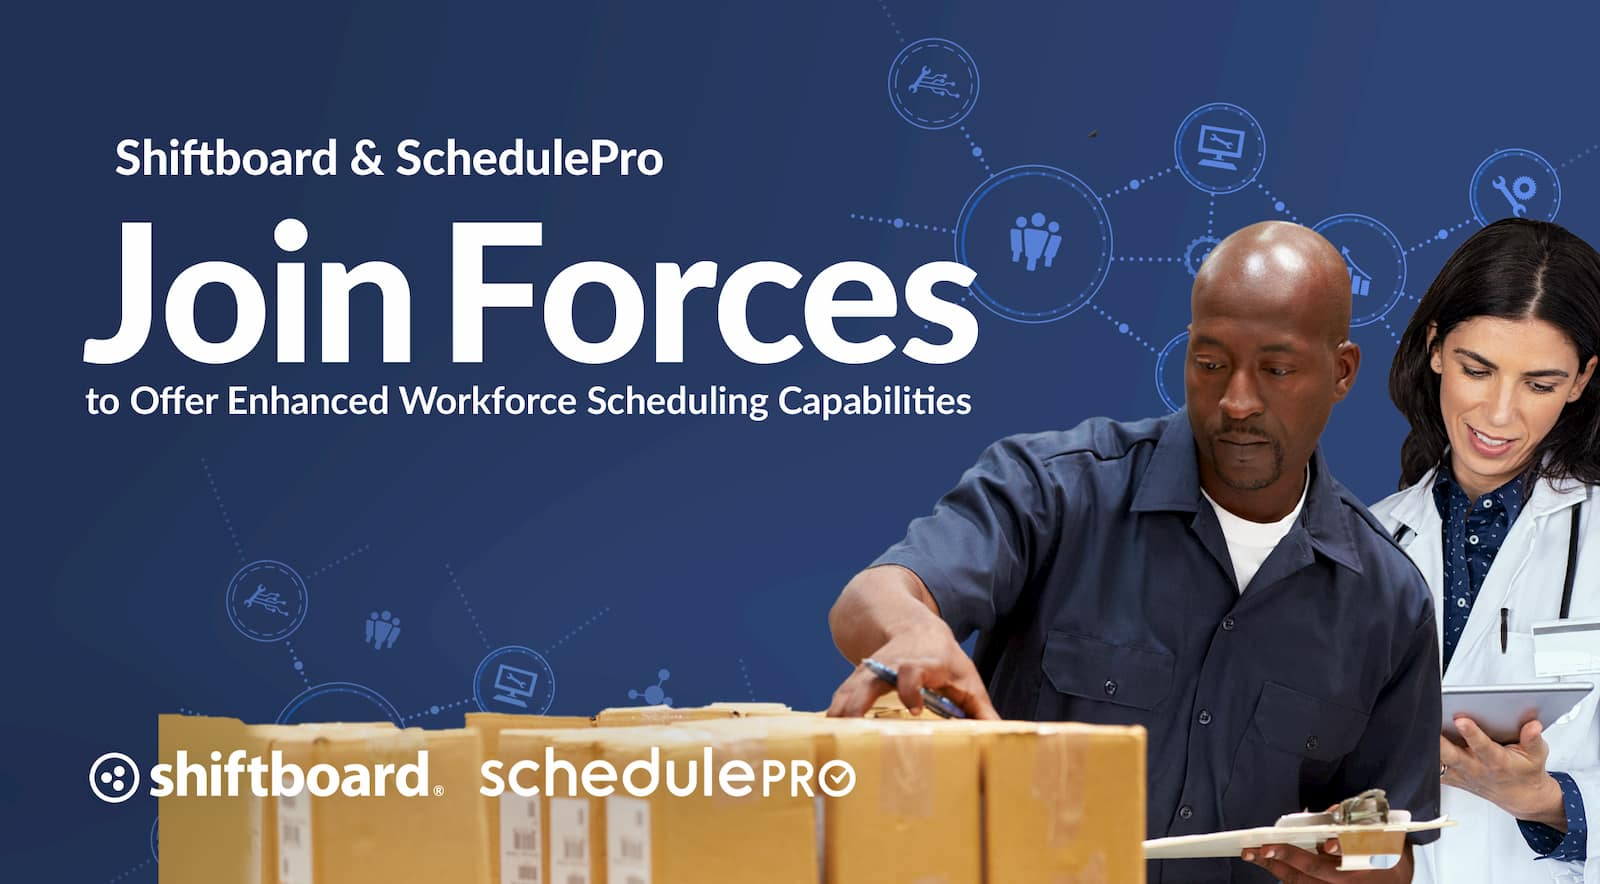 Shiftboard and SchedulePro Join Forces to Offer Enhanced Workforce Scheduling Capabilities